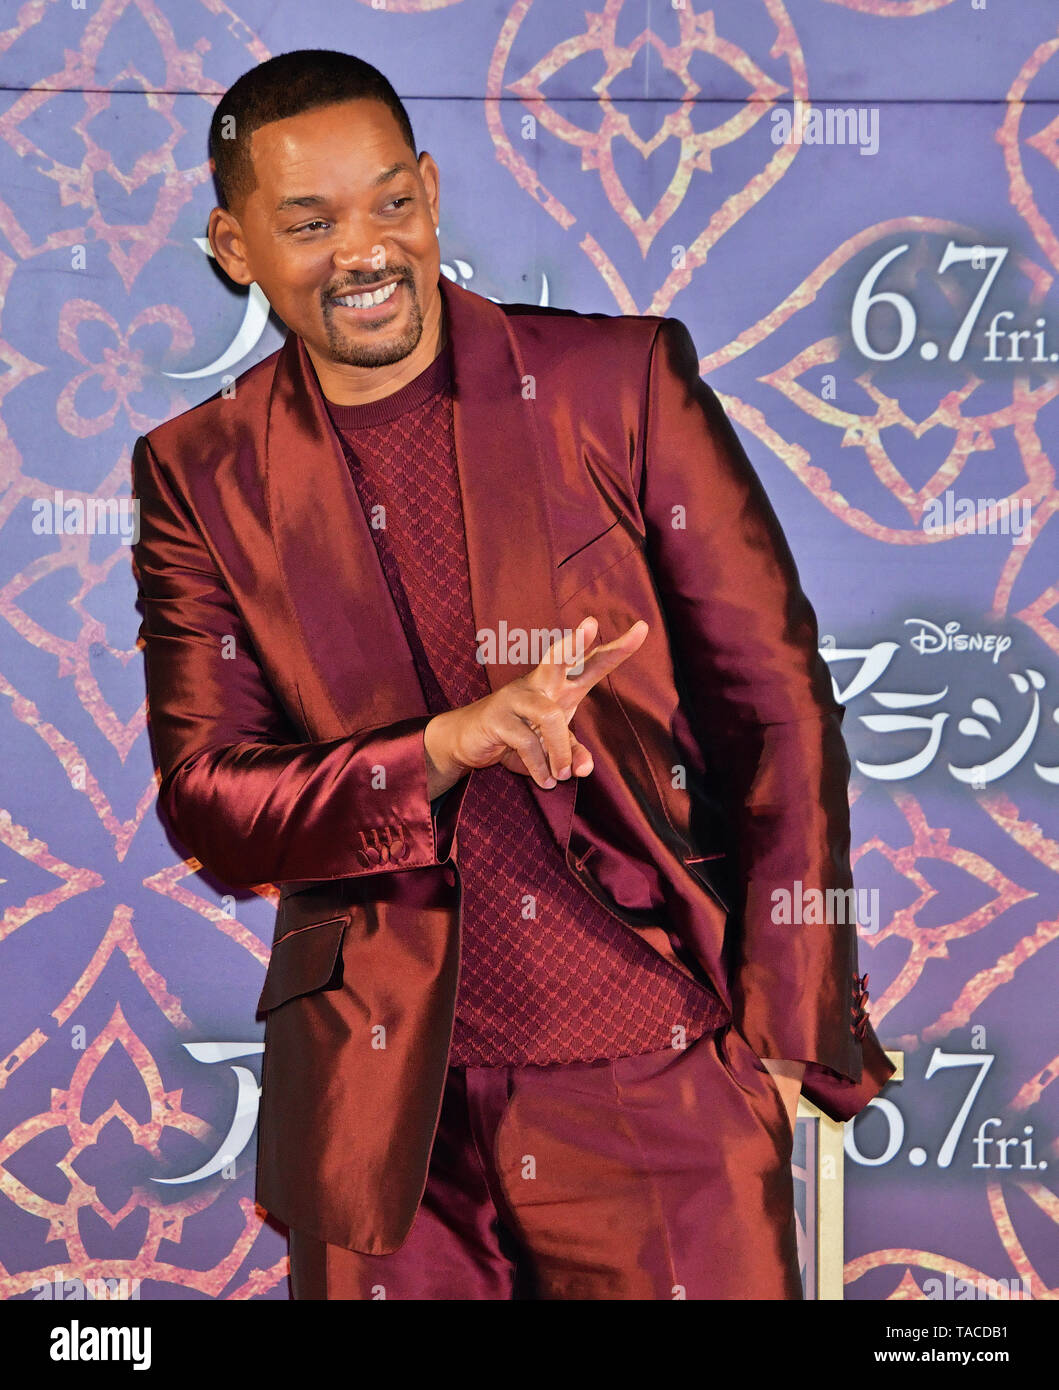 Actor Will Smith attends the Japan premiere for 'Aladdin' in Tokyo, Japan on May 16, 2019. Credit: AFLO/Alamy Live News - Stock Image